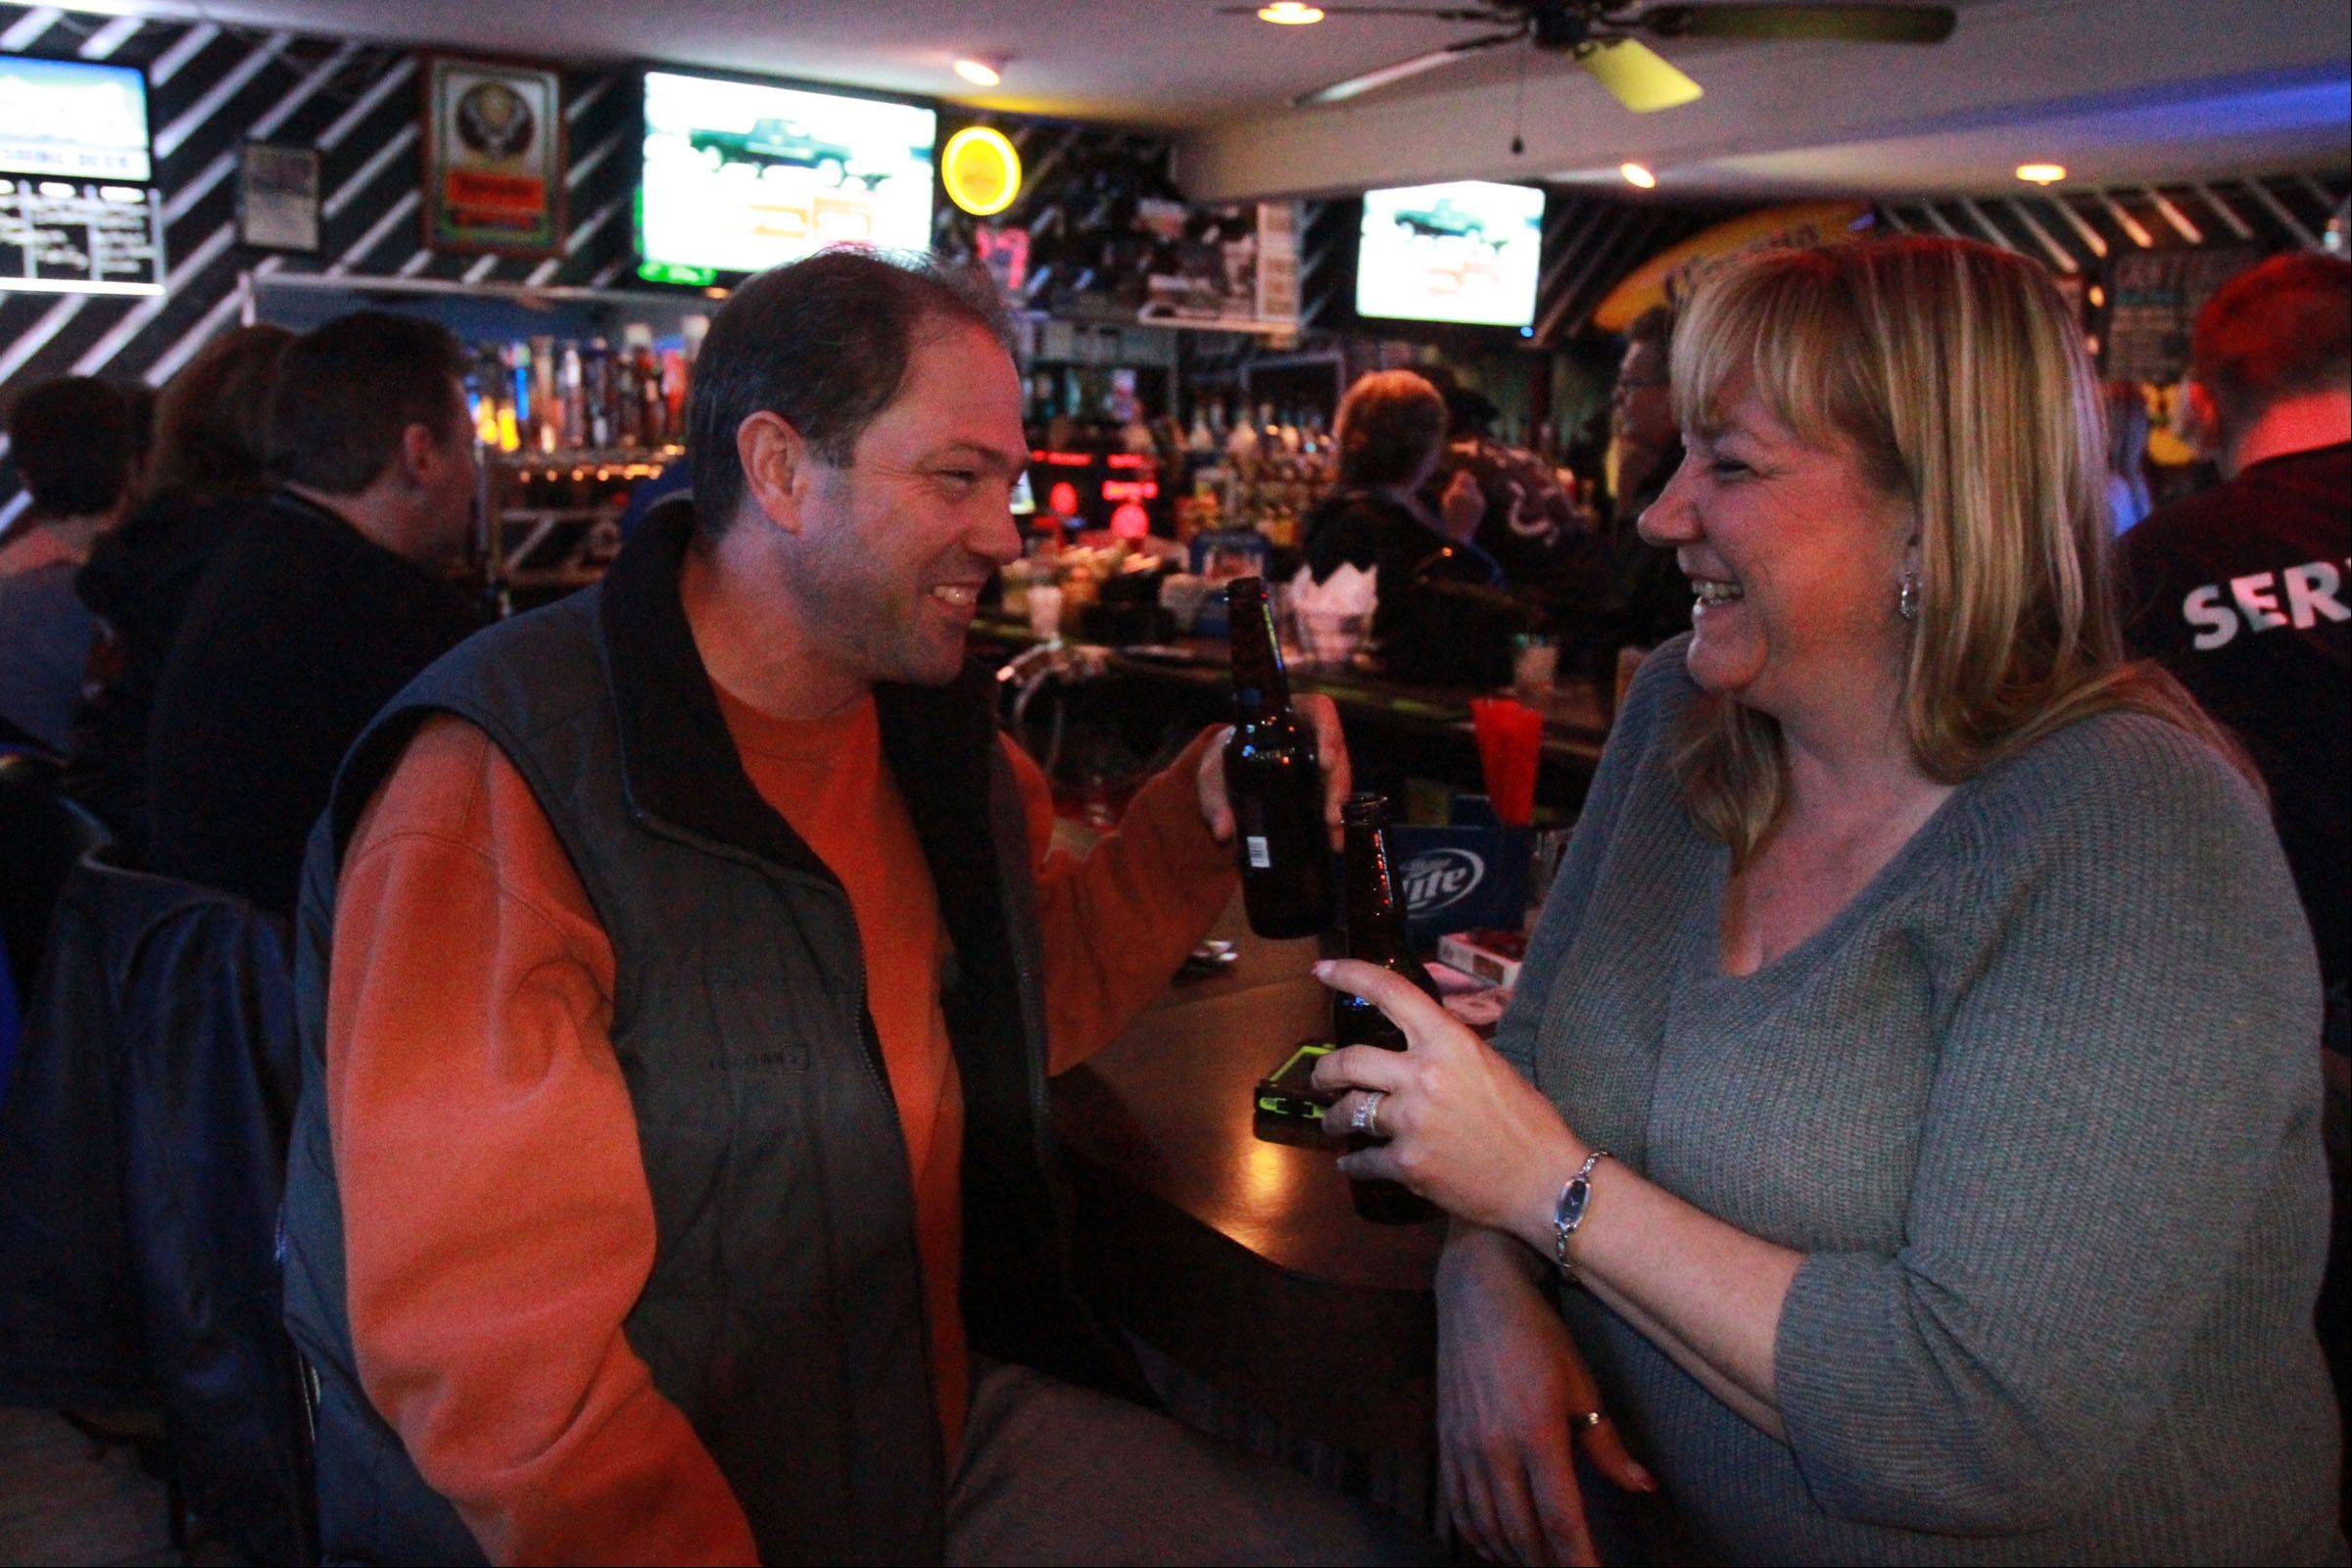 Rich and LeeAnne Sifrer of Wonder Lake met at Route 12 Bar & Grill. They were married just a month ago and held their reception at the Fox Lake bar.